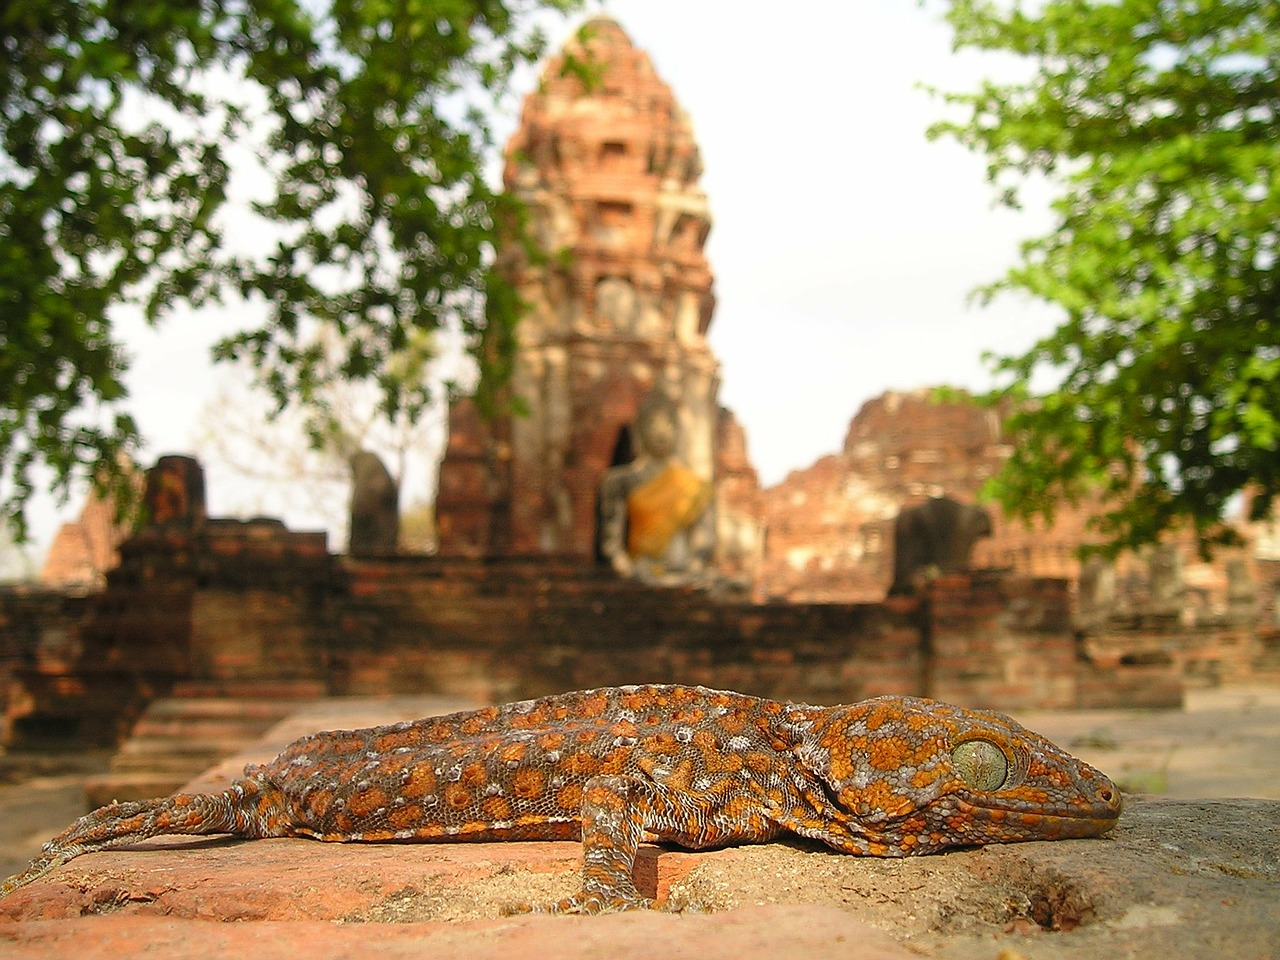 lizard,reptile,temple,buddhism,iguana,dragon,thailand,southeast,asia,so,laos,cambodia,wat,free pictures, free photos, free images, royalty free, free illustrations, public domain